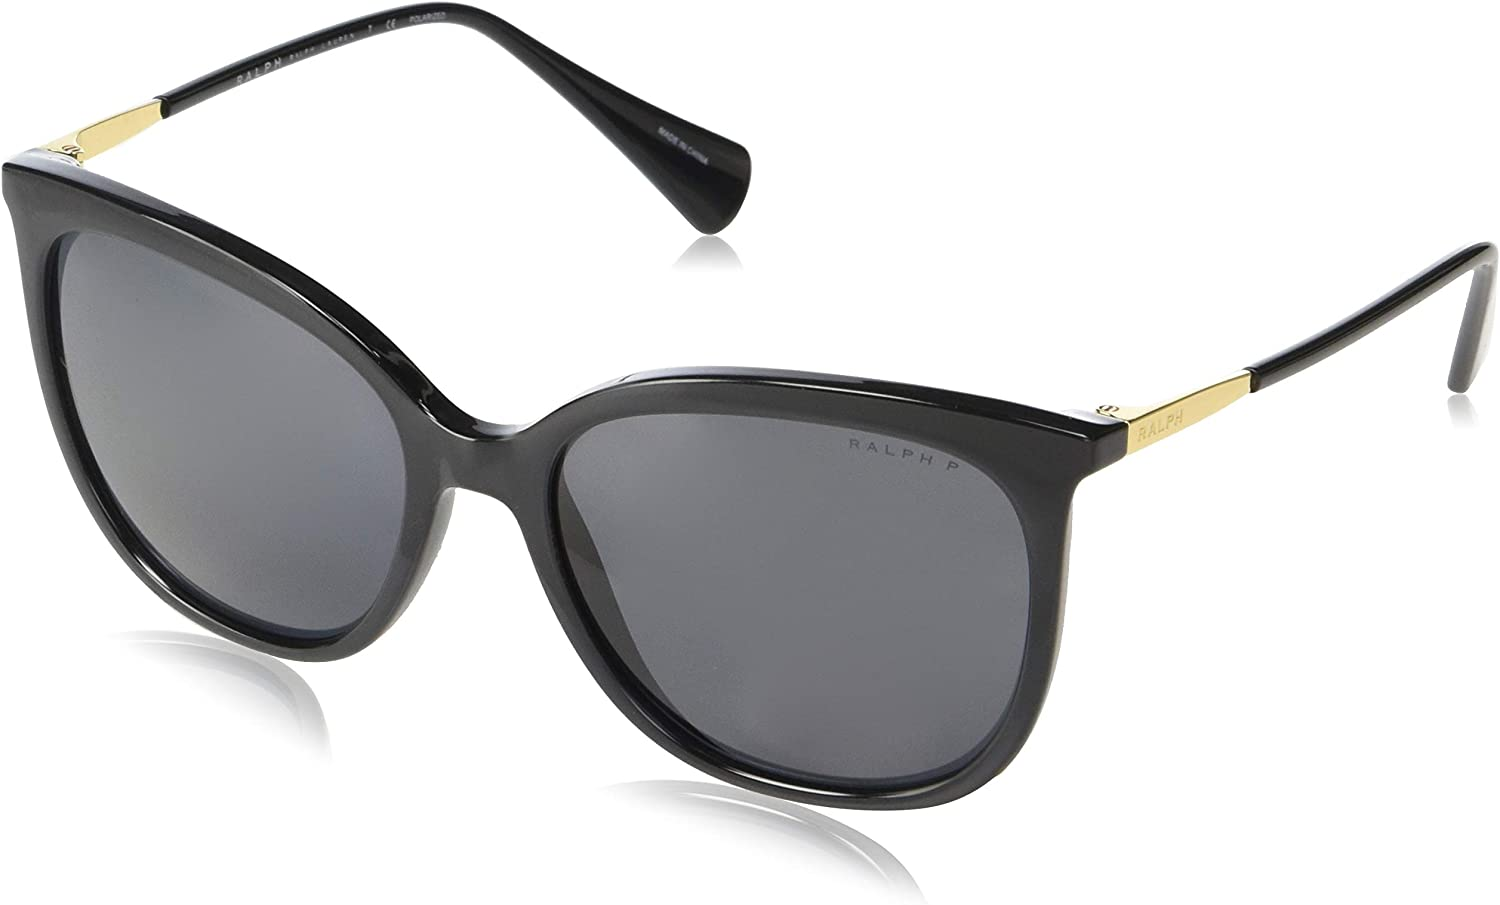 Ralph by Ralph Lauren Women's 0ra5248 Polarized Square Sunglasses, Black, 56.0 mm